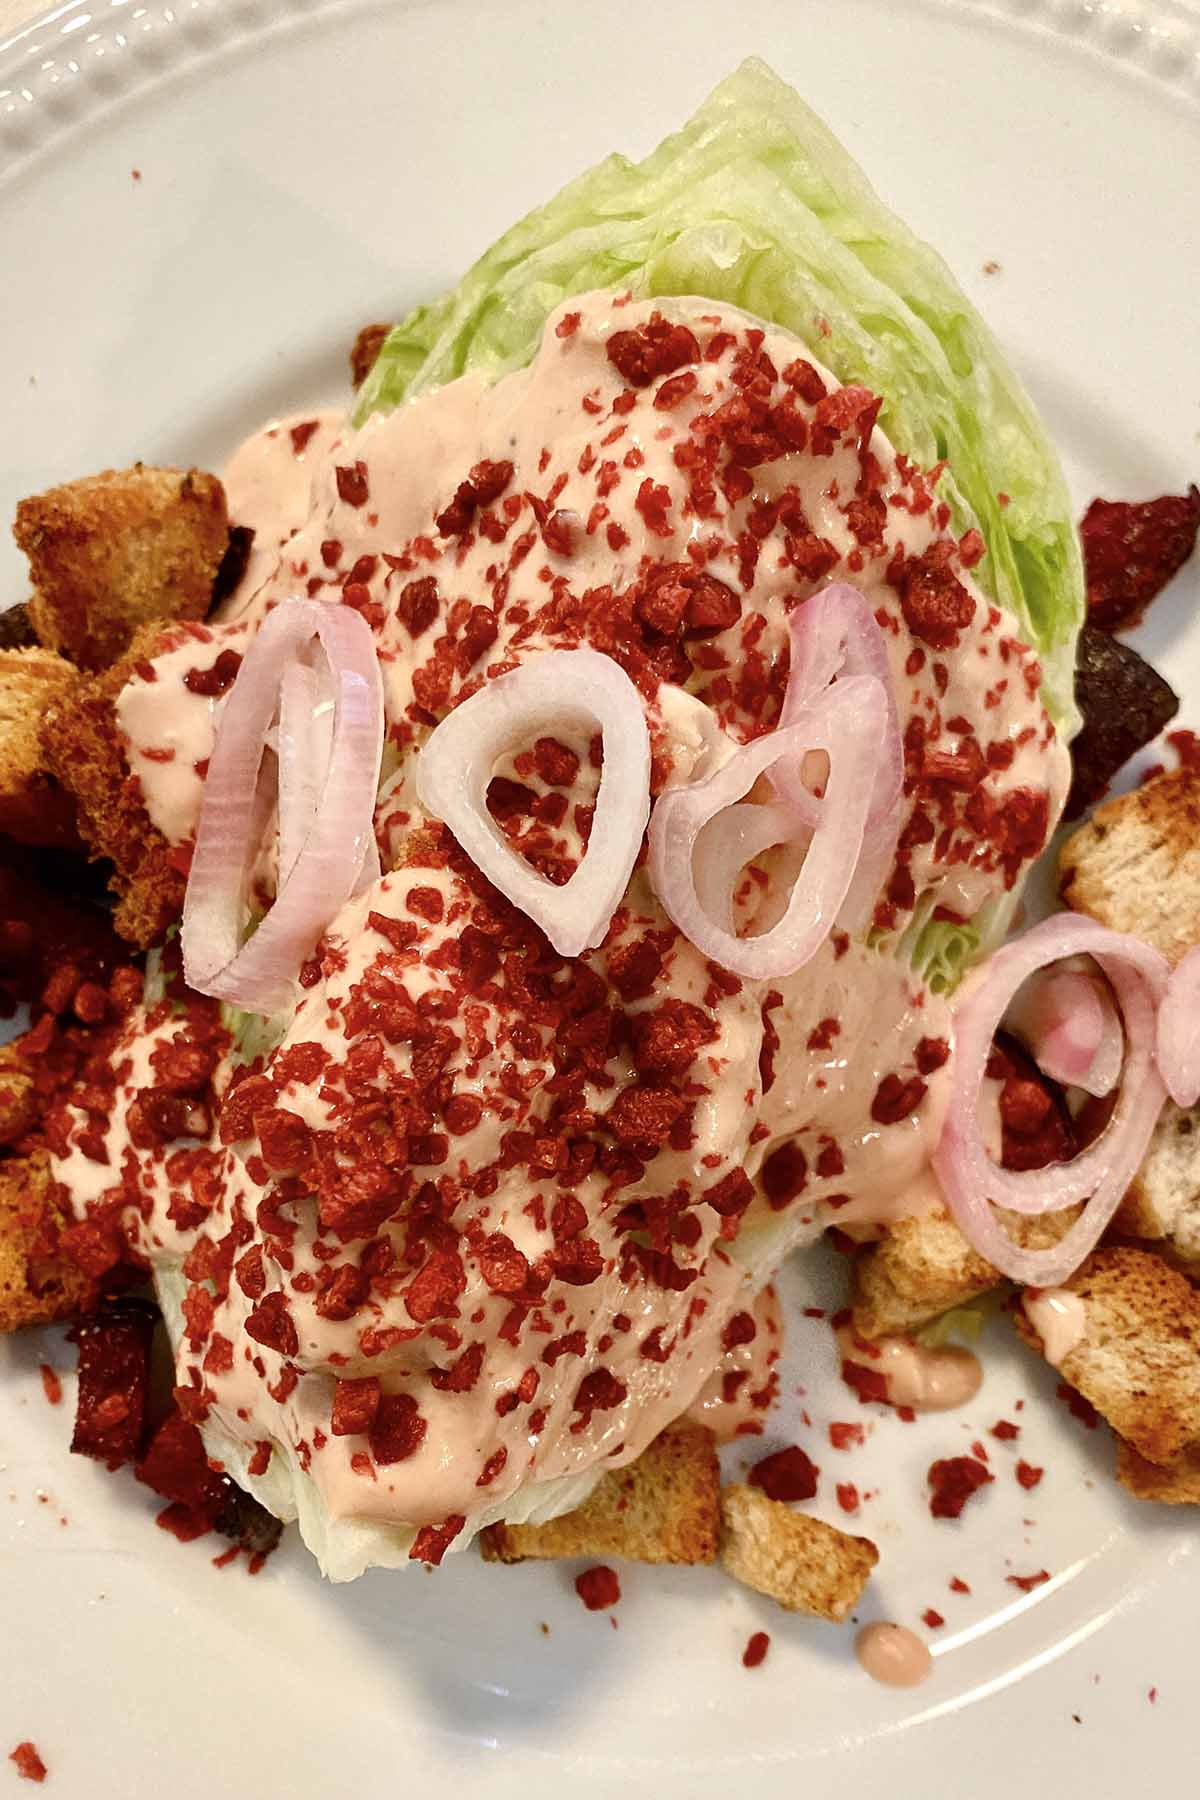 wedge of iceberg lettuce on a plate with Russian dressing, beets, Bacos, croutons, and pickled onions